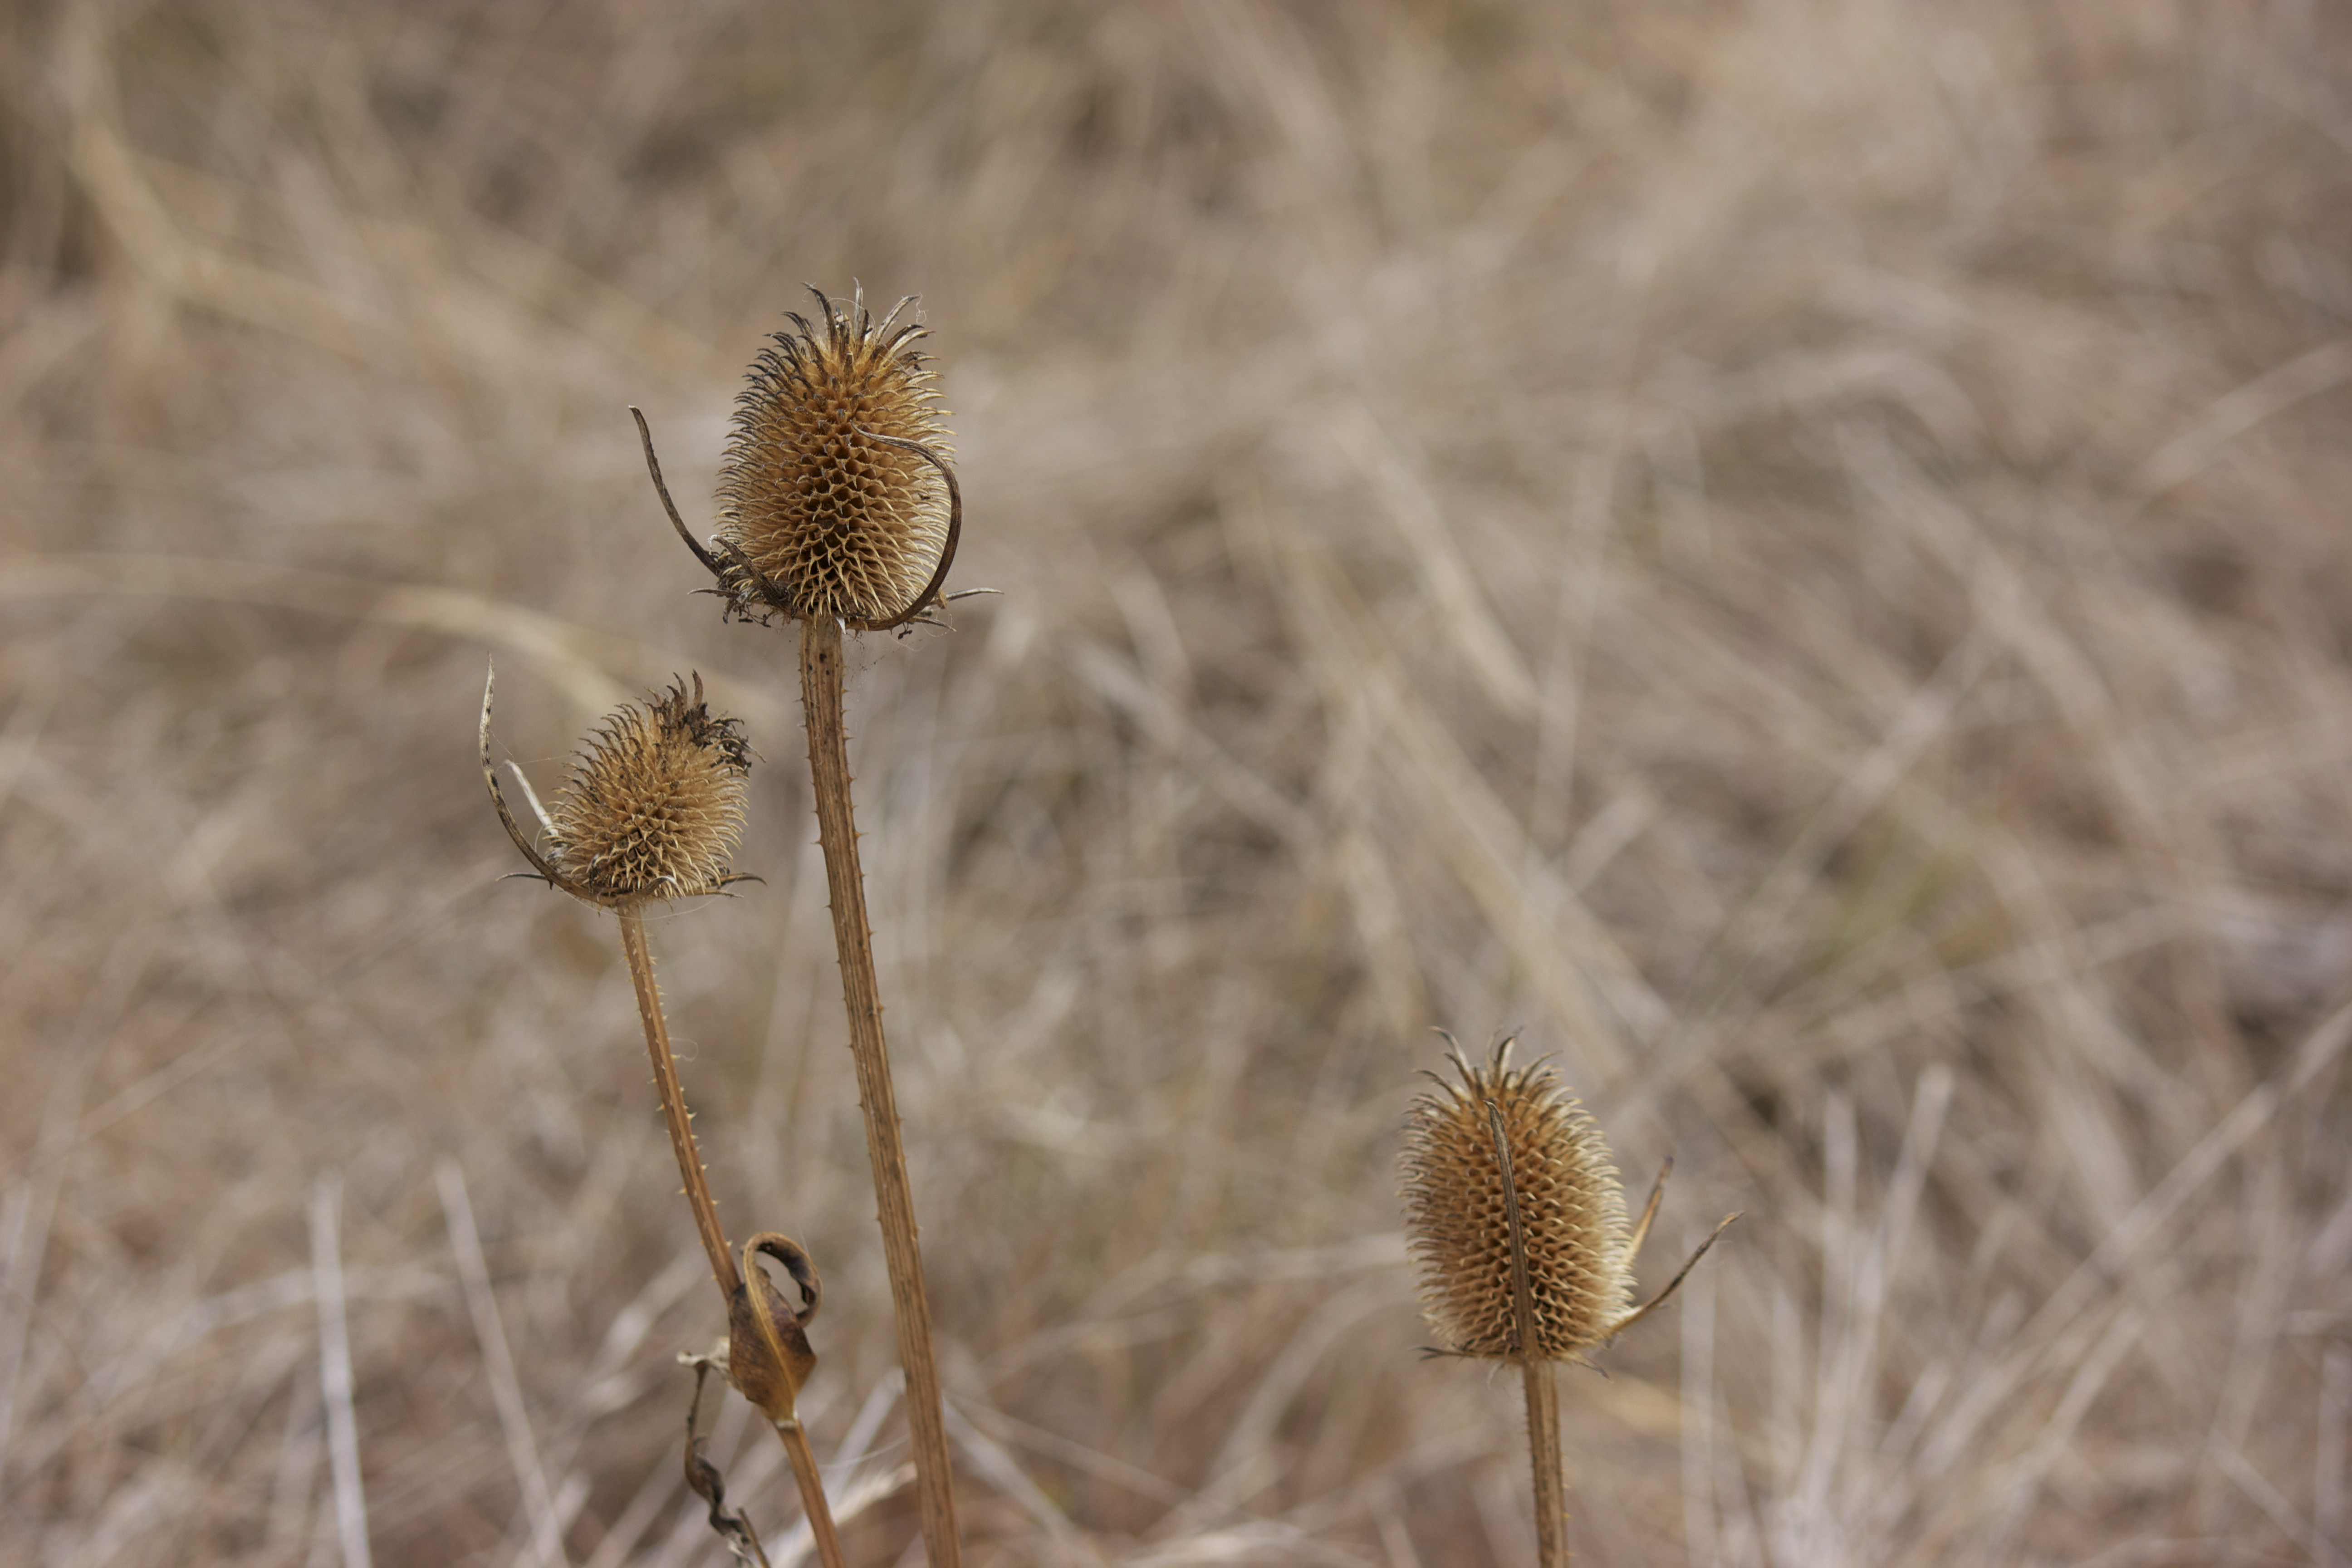 Dried thistles against a pale brown background.